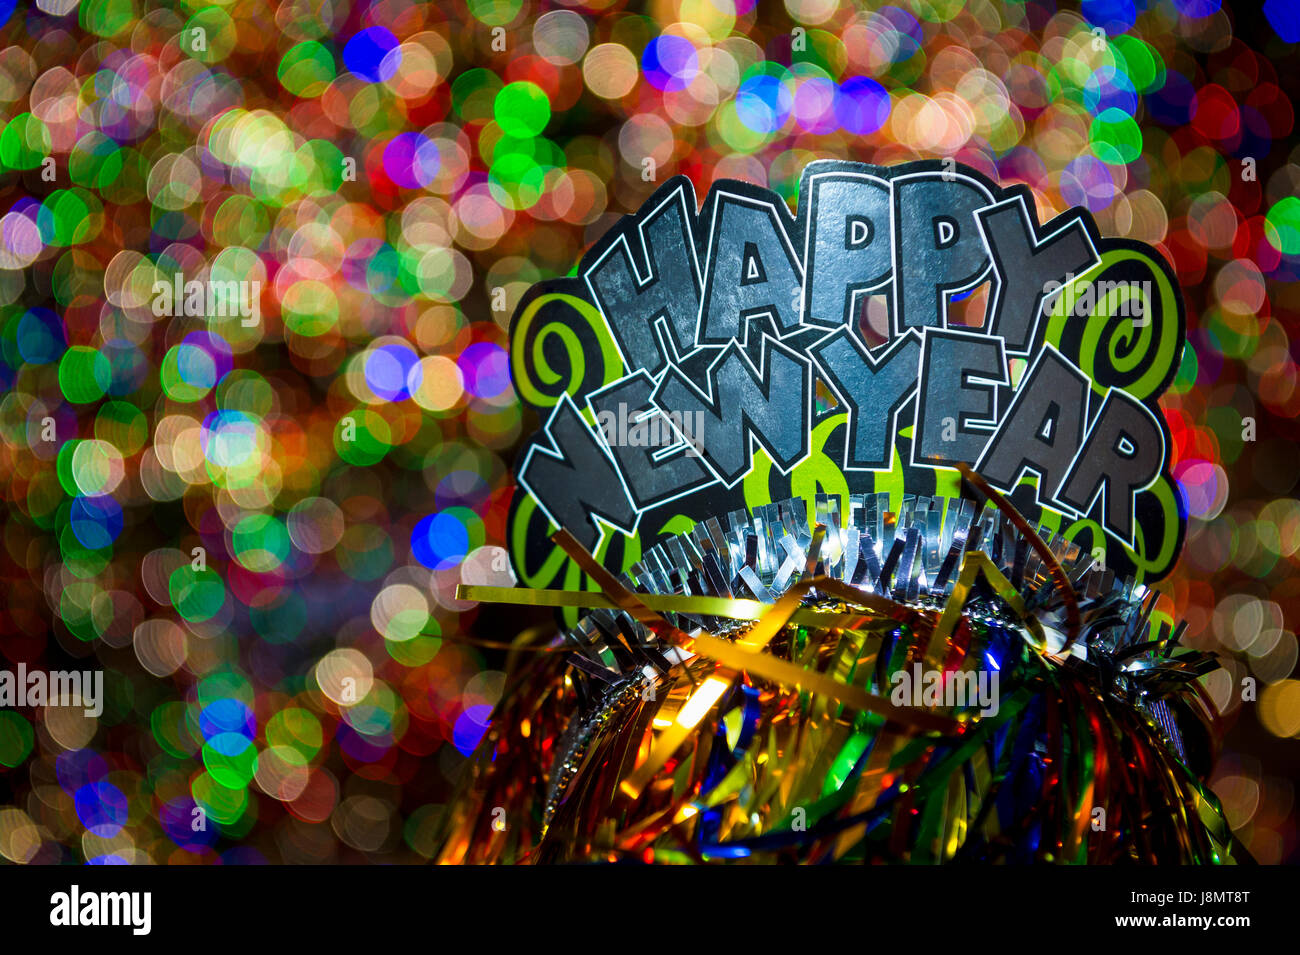 Happy New Year party hat sparkling against a glowing holiday celebration background in a colorful night view - Stock Image